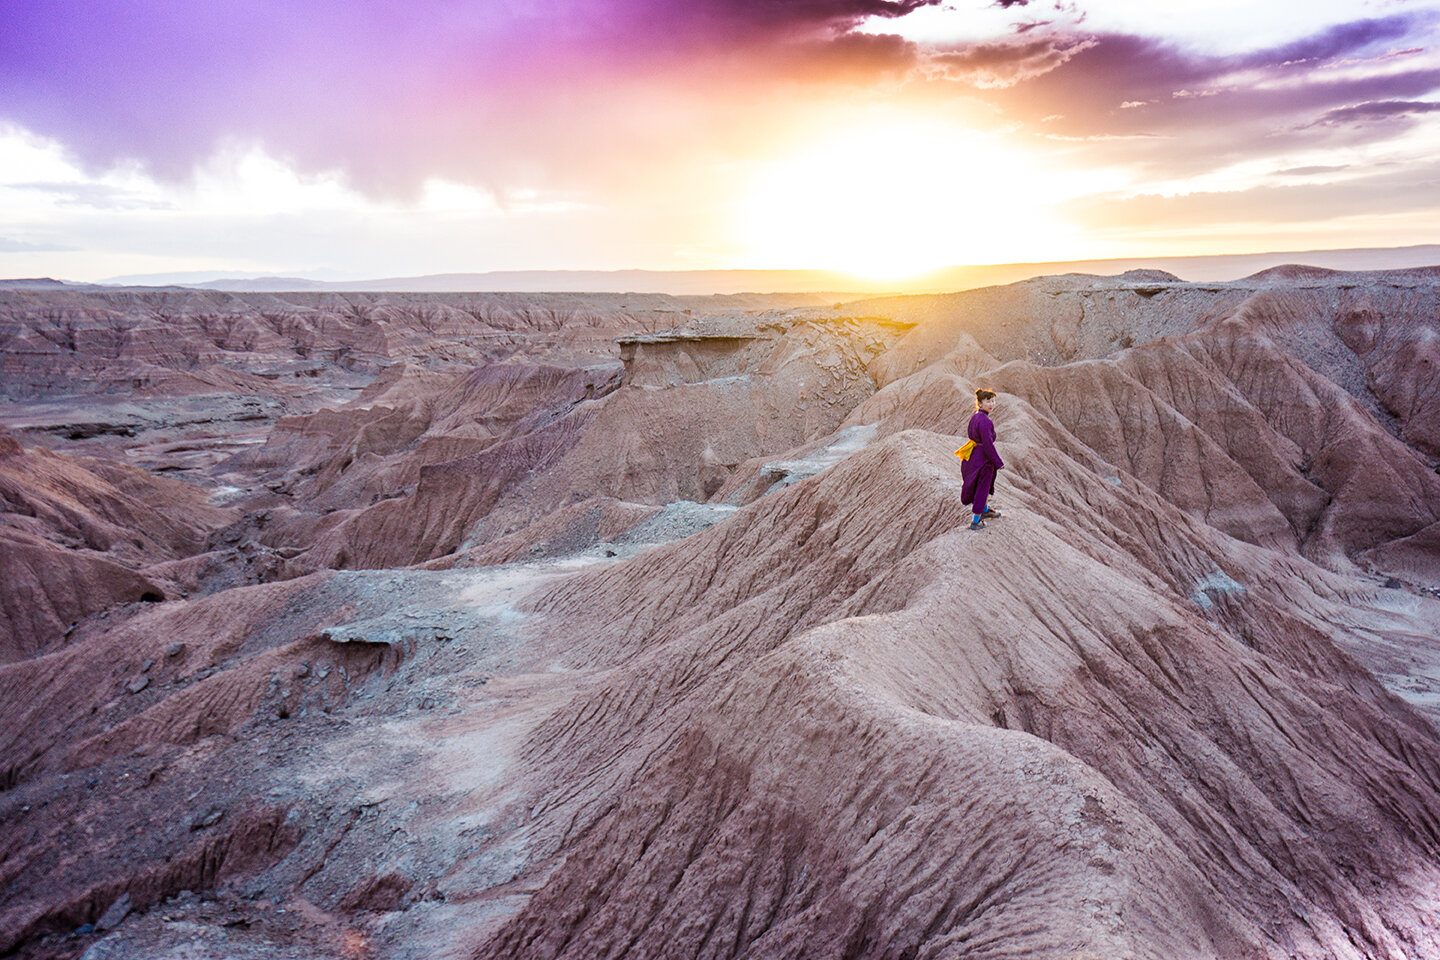 RETURN TO THE FLAMING CLIFFS text and images by Matthew DeSantis